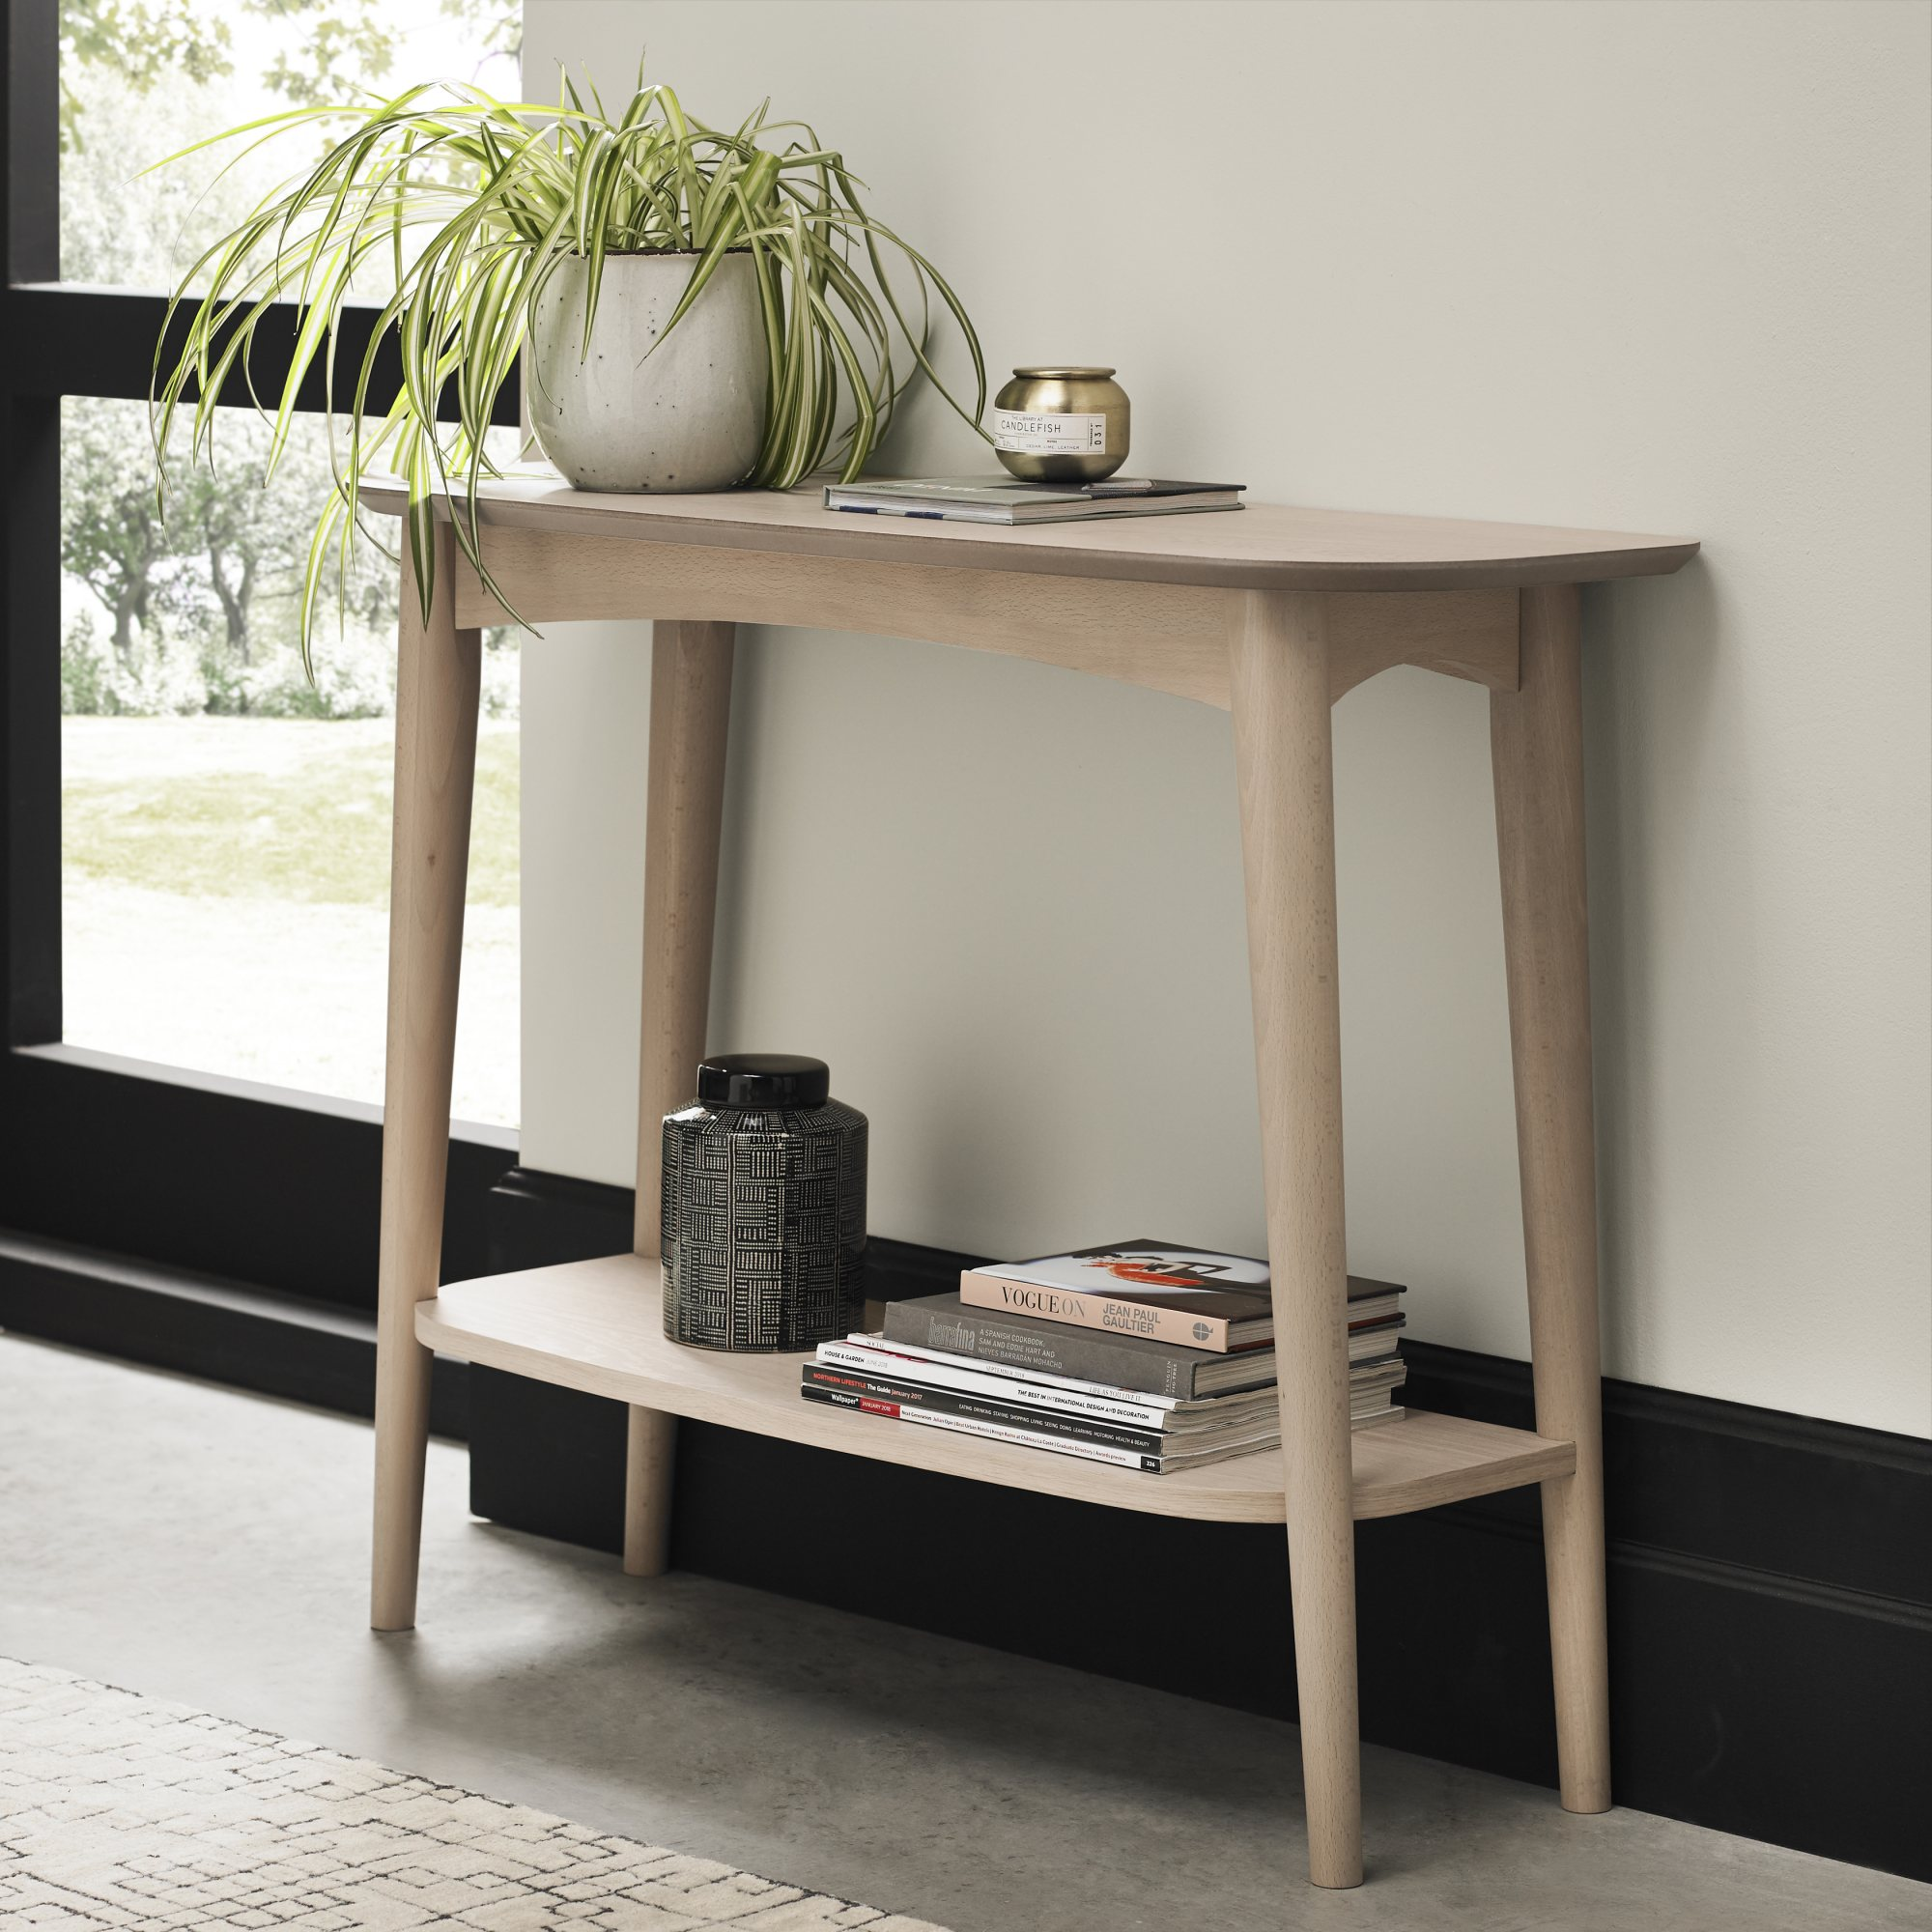 RETRO OAK CONSOLE WITH SHELF